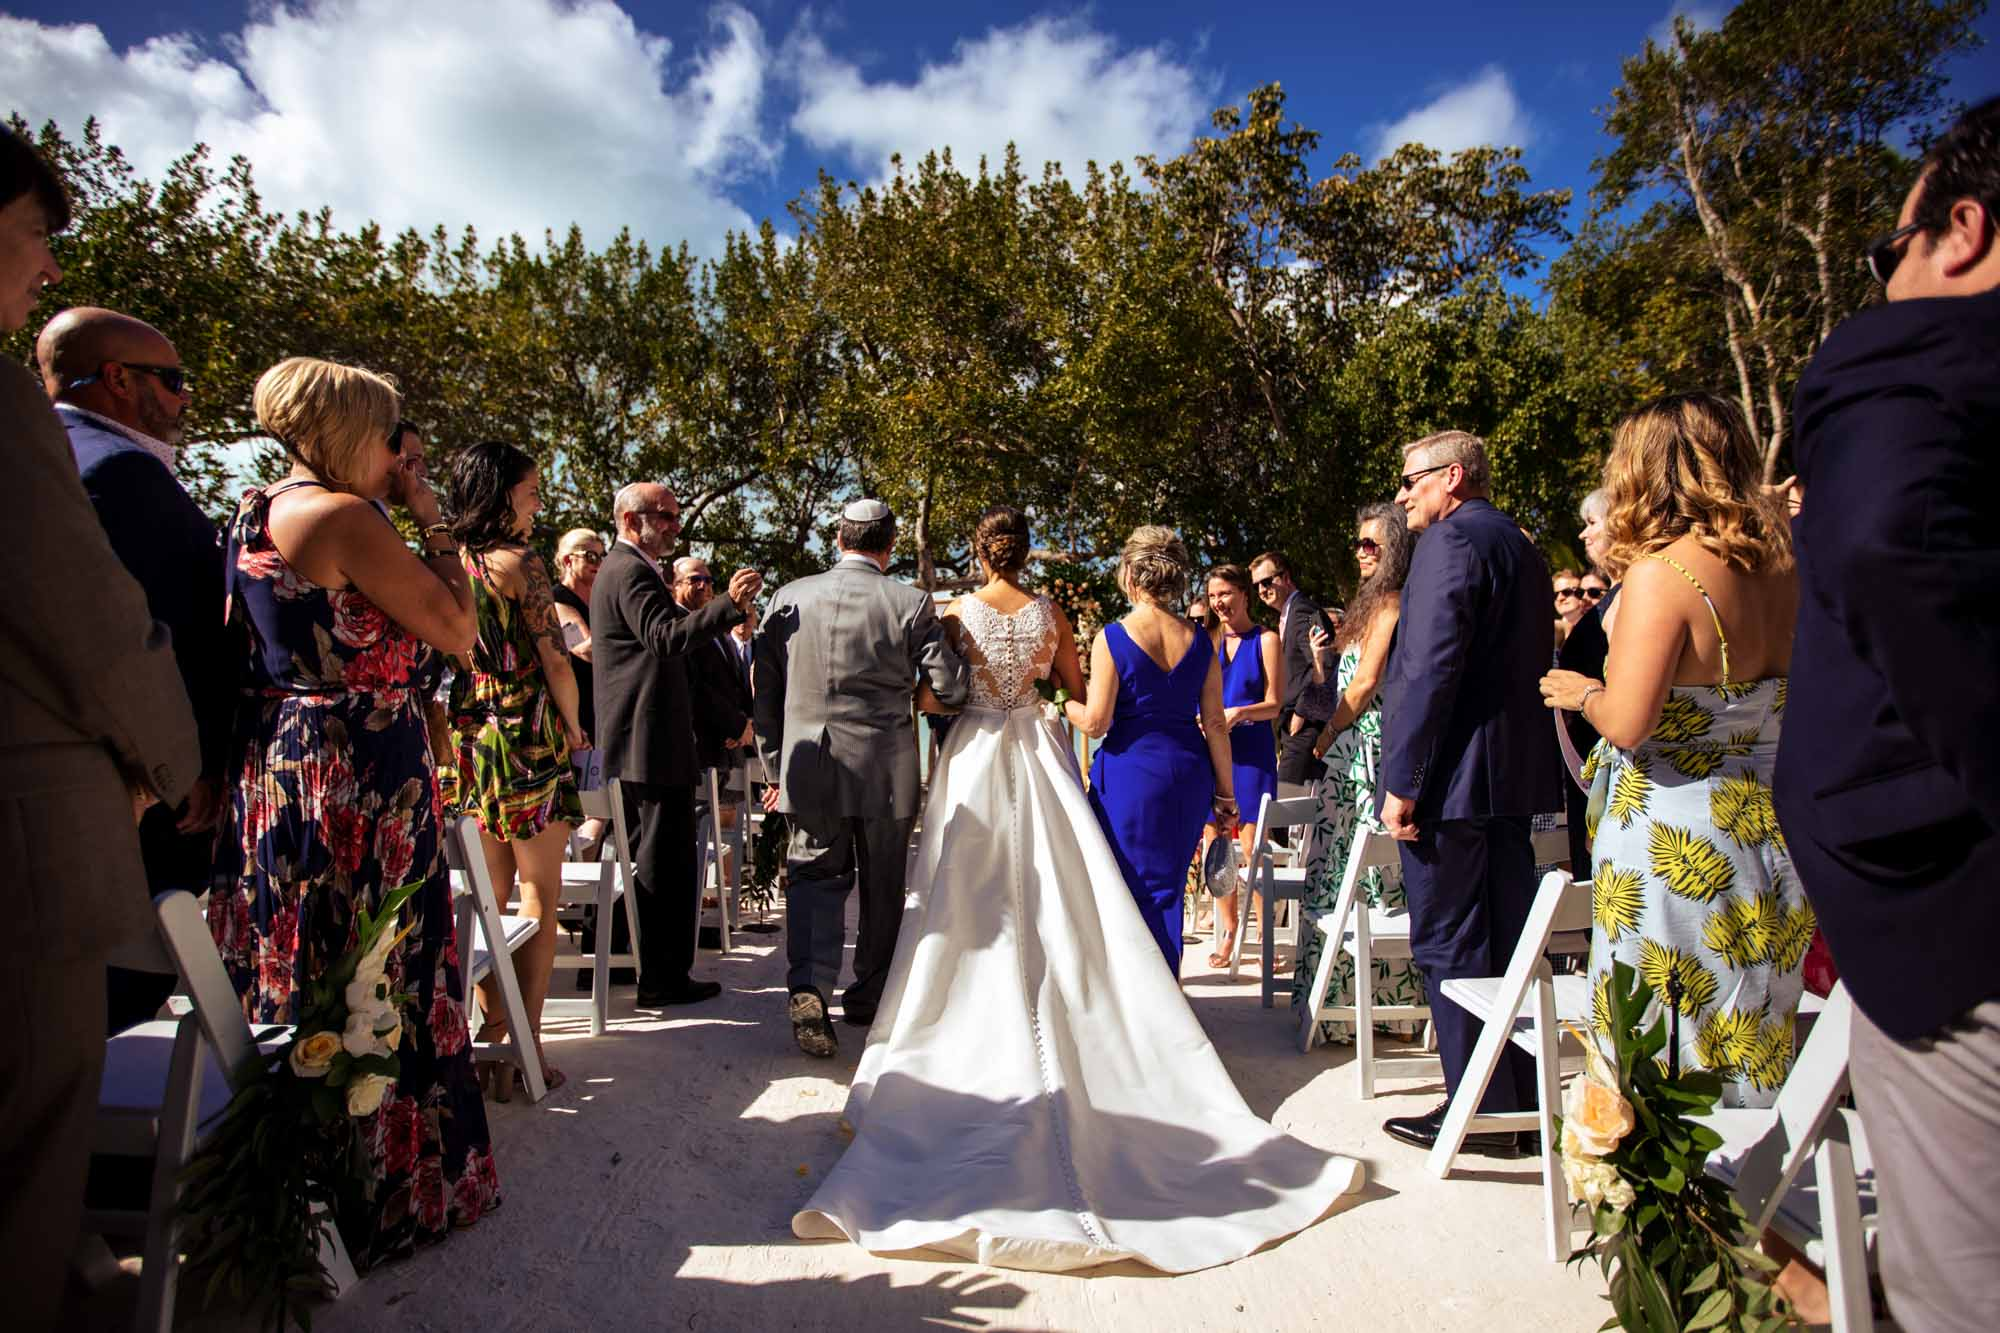 Shot from the back of bride walking down the aisle with her father at bakers cay